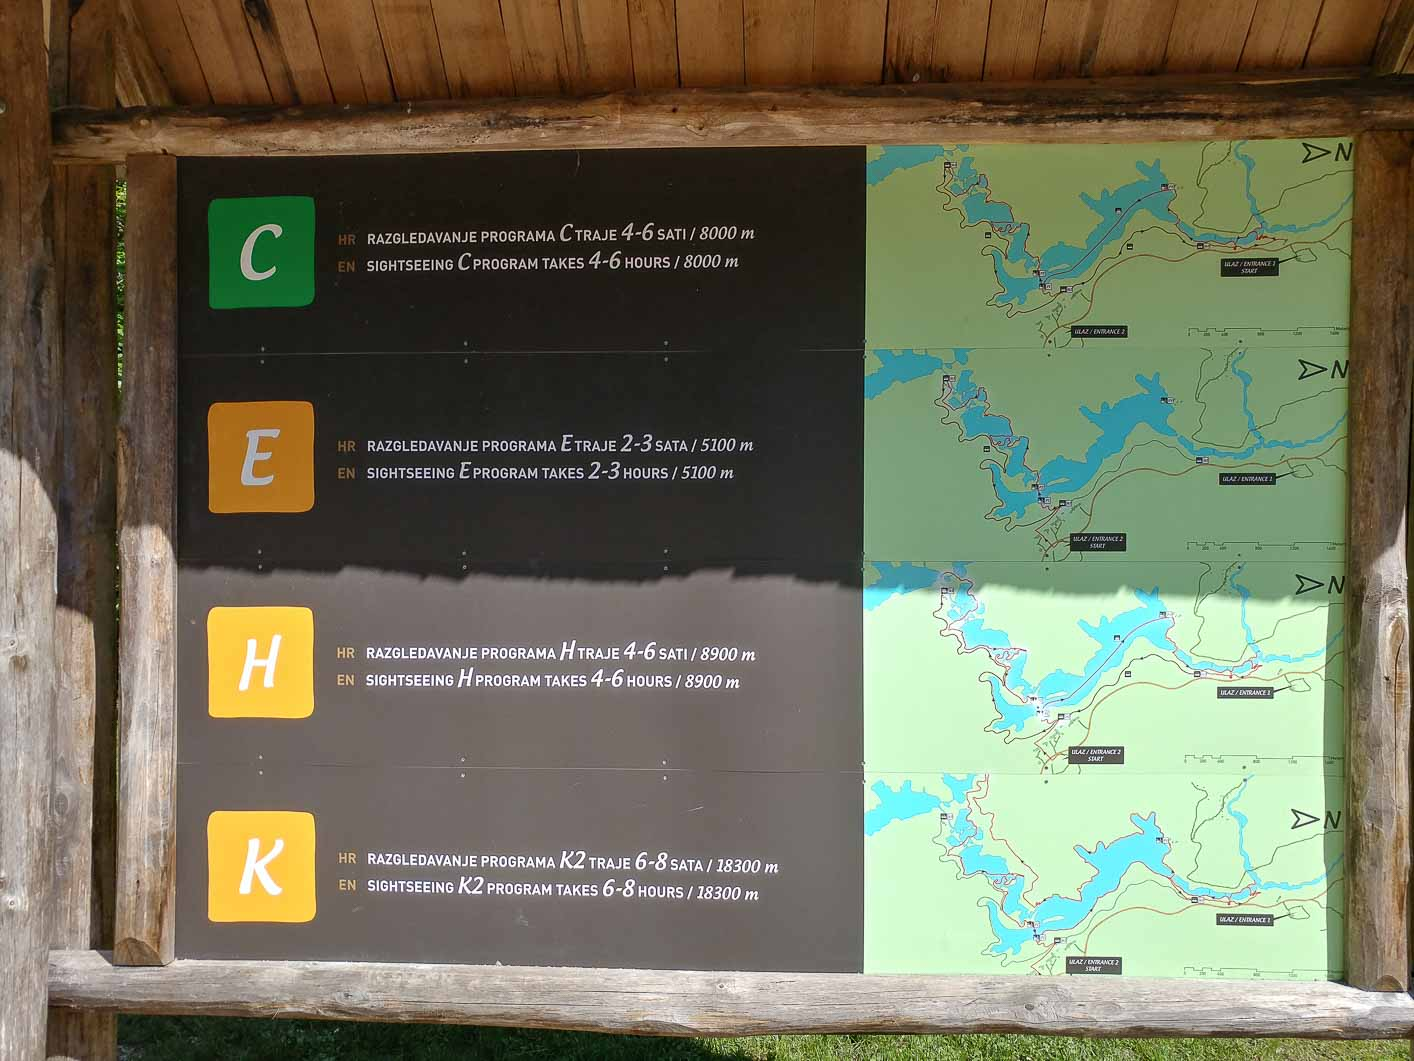 Plitvice lakes, trail programs from entrance 2